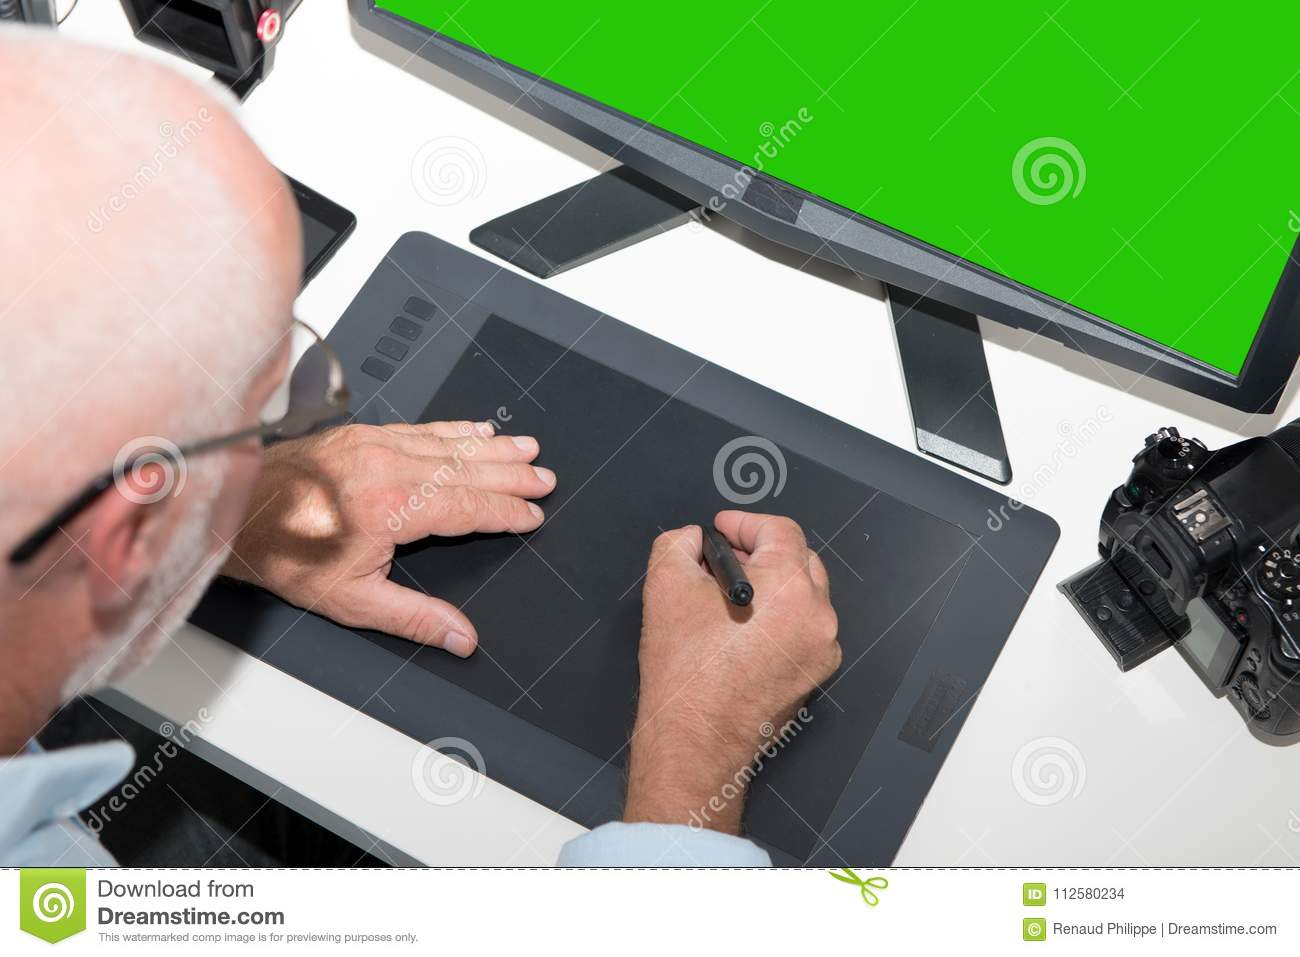 Mature man working with graphics tablet in office